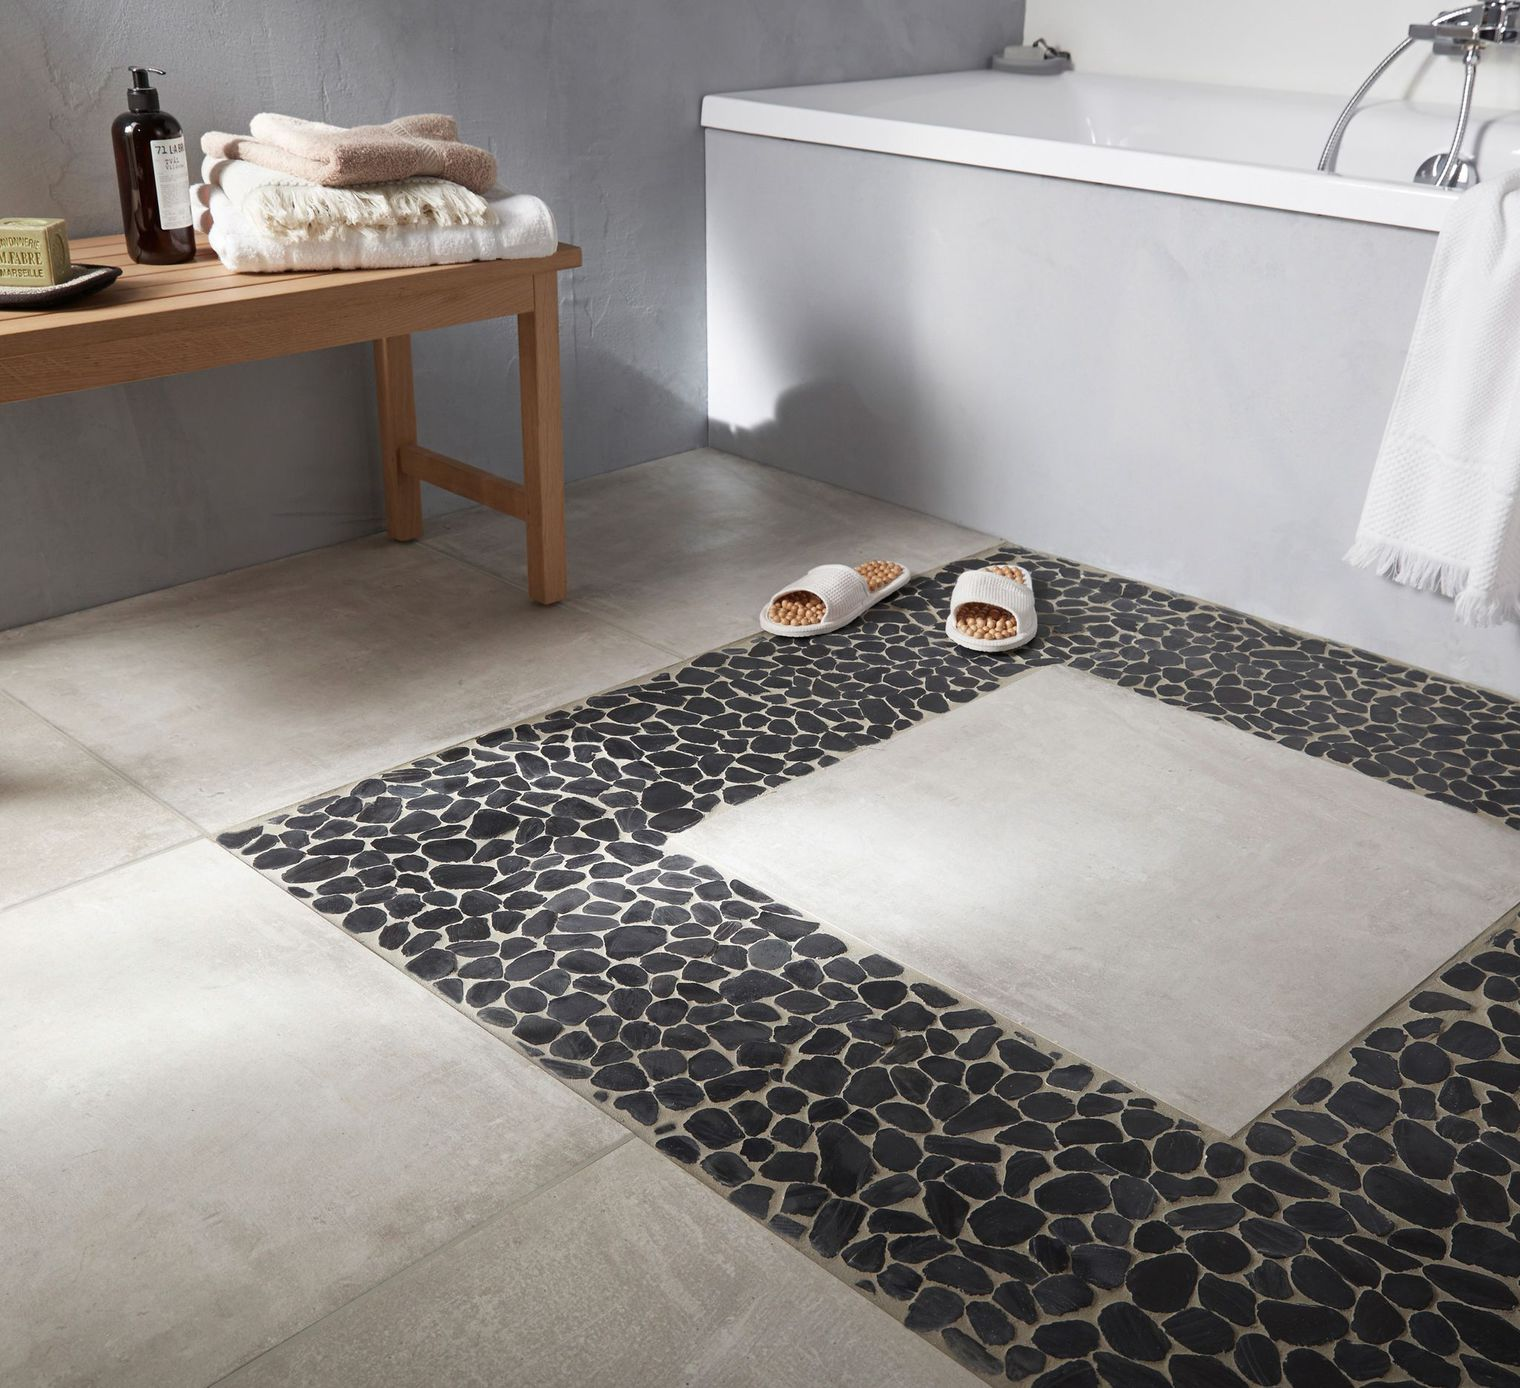 Carrelage Galet Carrelage Galet Salle De Bain Perfect Carrelage Galets